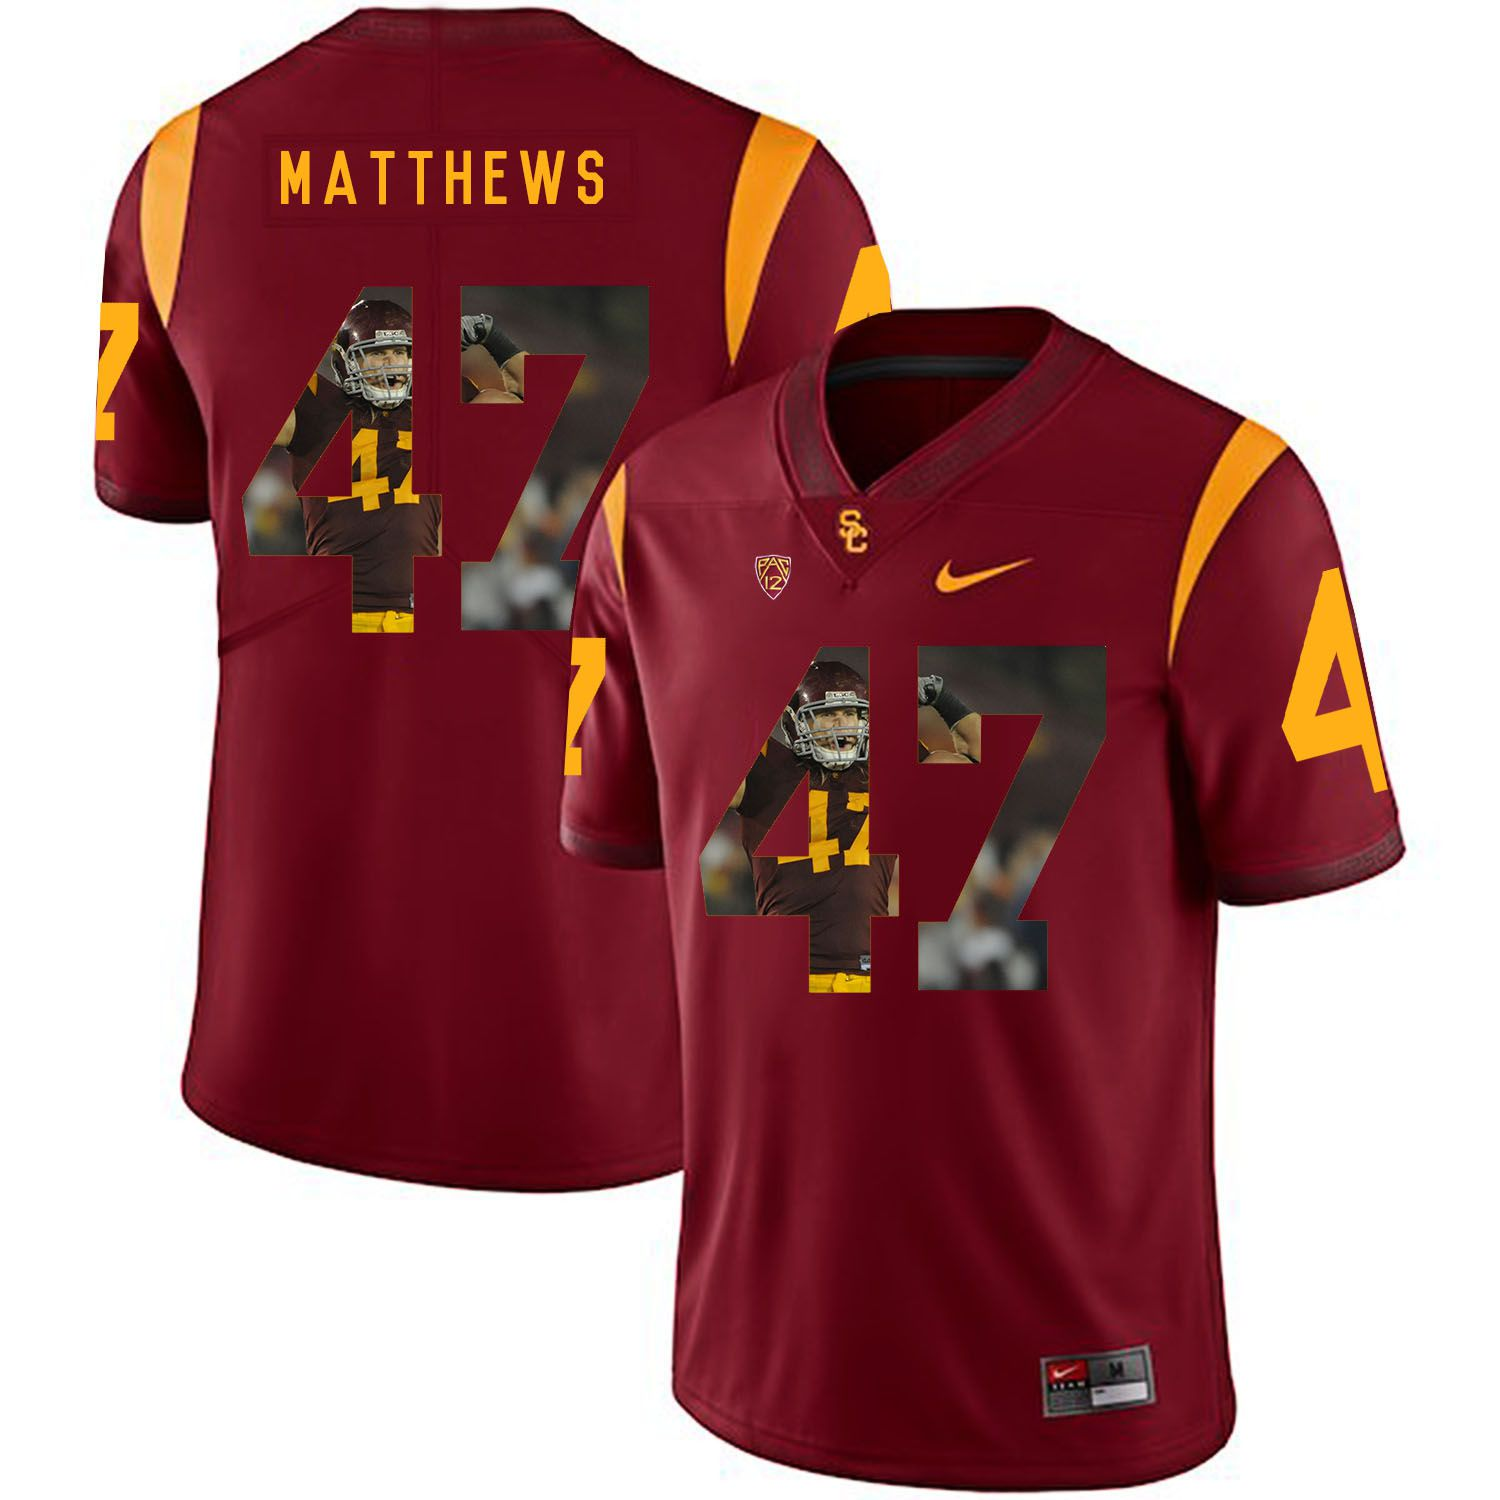 Men USC Trojans 47 Matthews Red Fashion Edition Customized NCAA Jerseys